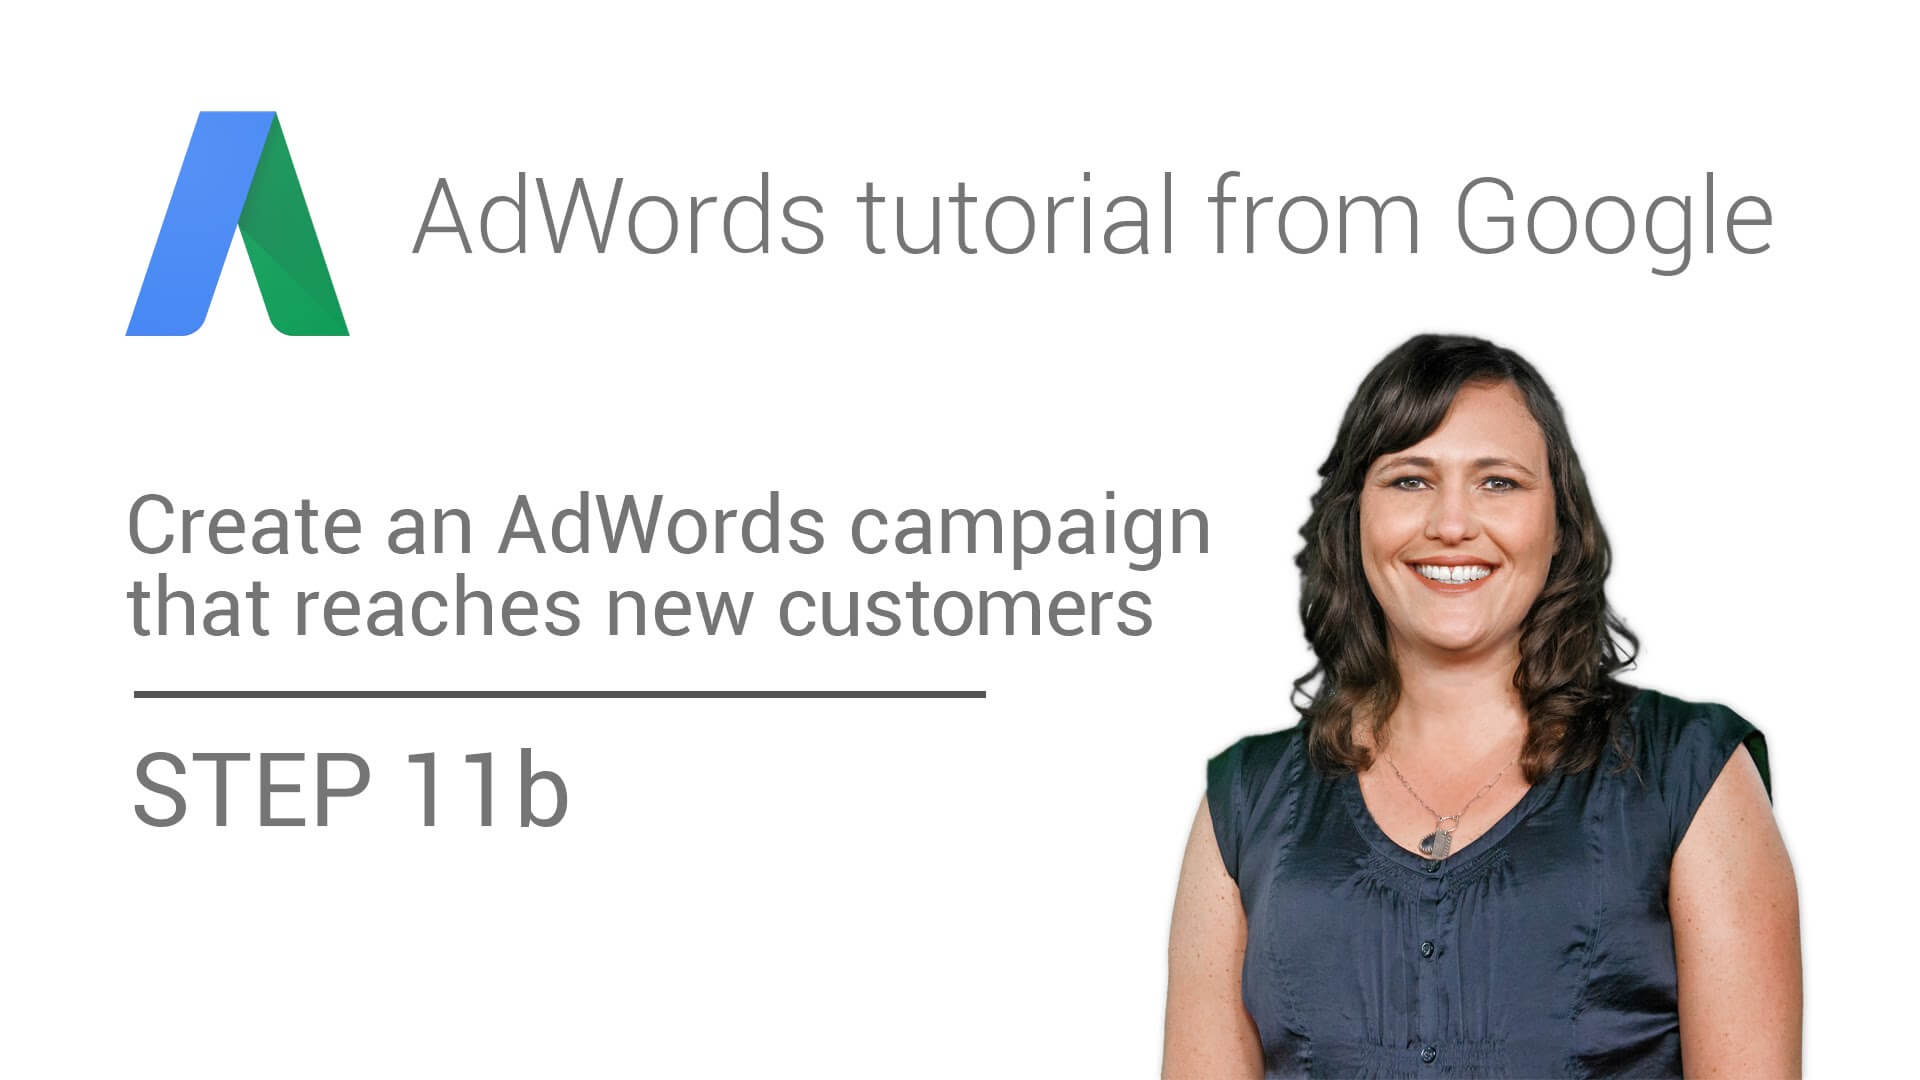 Step 11c: I want the most precise reach for my ads